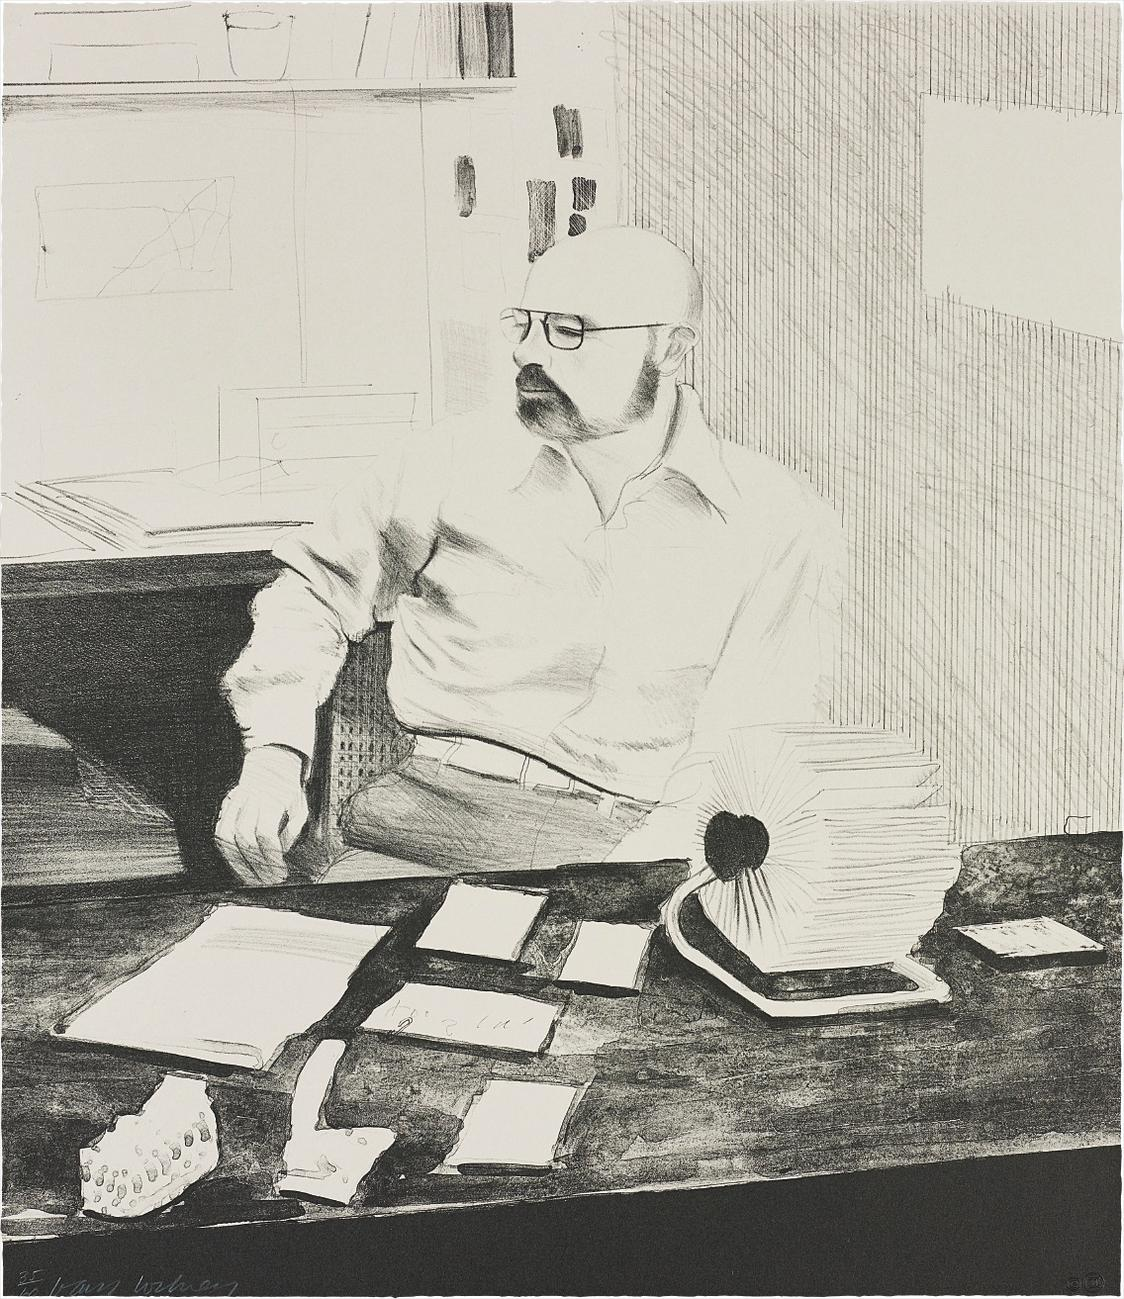 David Hockney-Sidney In His Office, From Friends-1976